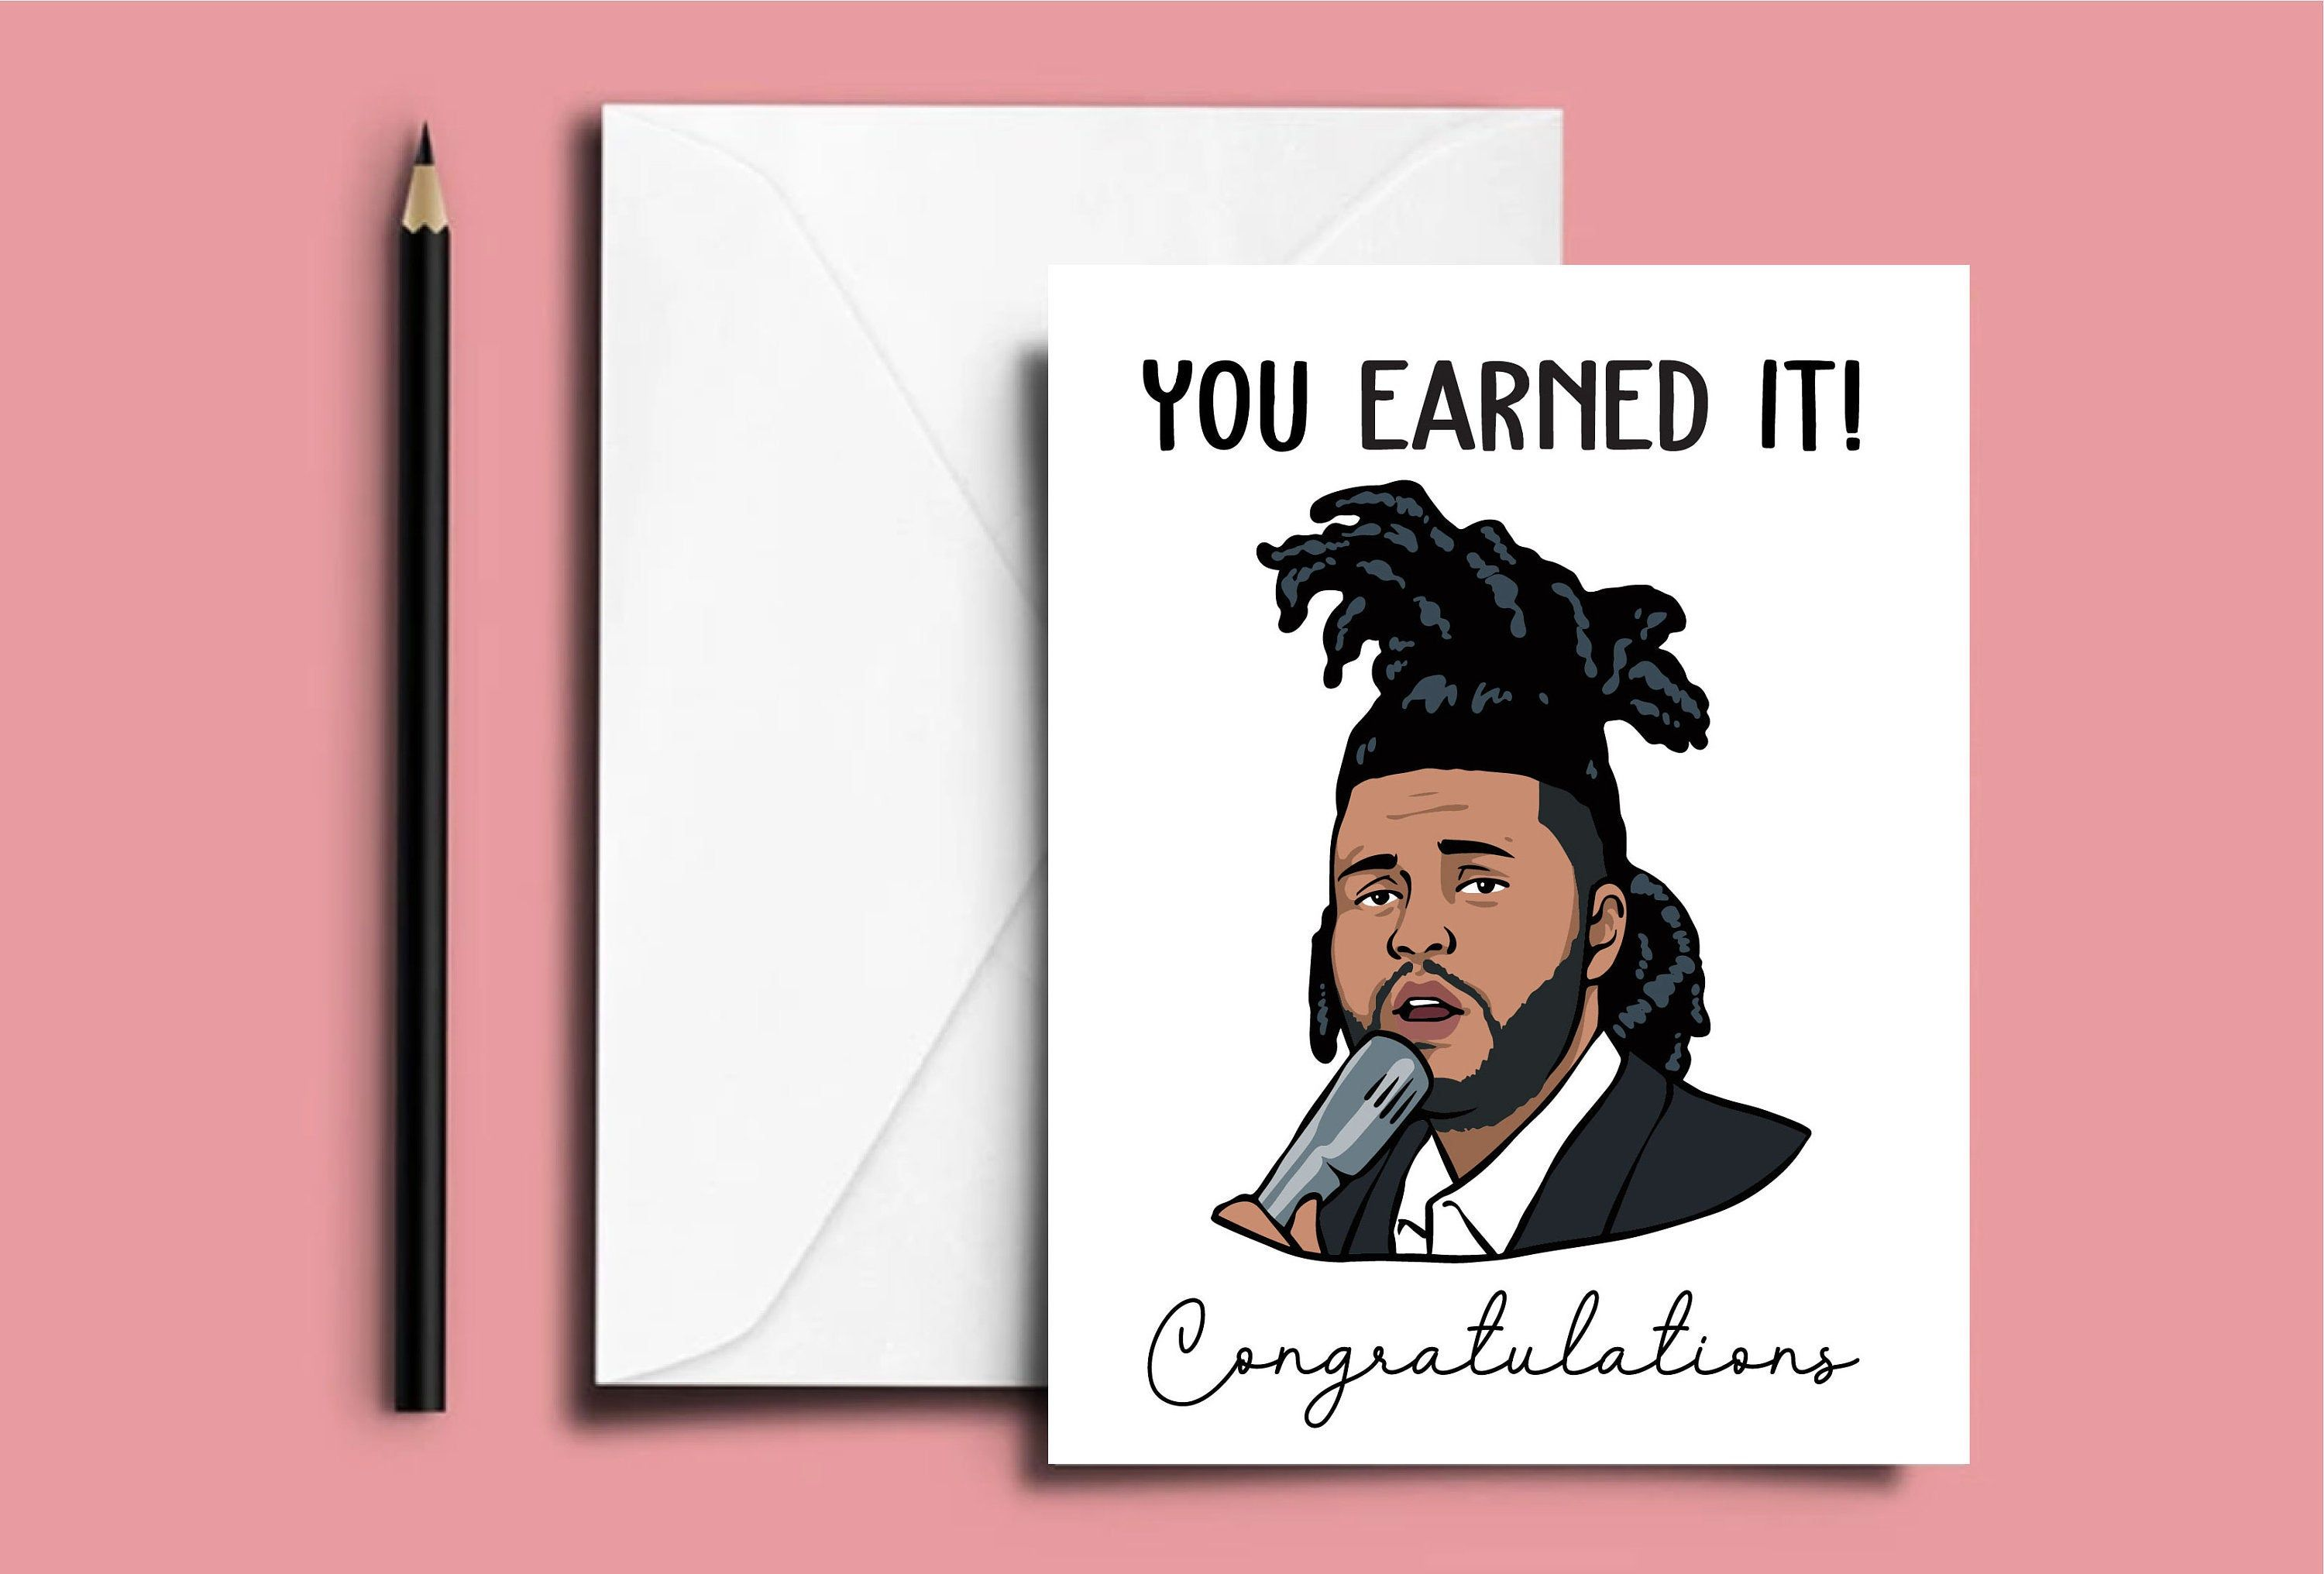 The Weeknd Congratulations Card Funny Congratulations The Weeknd Card Celebrity Greeting Cards Ovoxo Xo Merch The Weeknd Fans Congratulations Card Cute Birthday Cards Etsy Cards